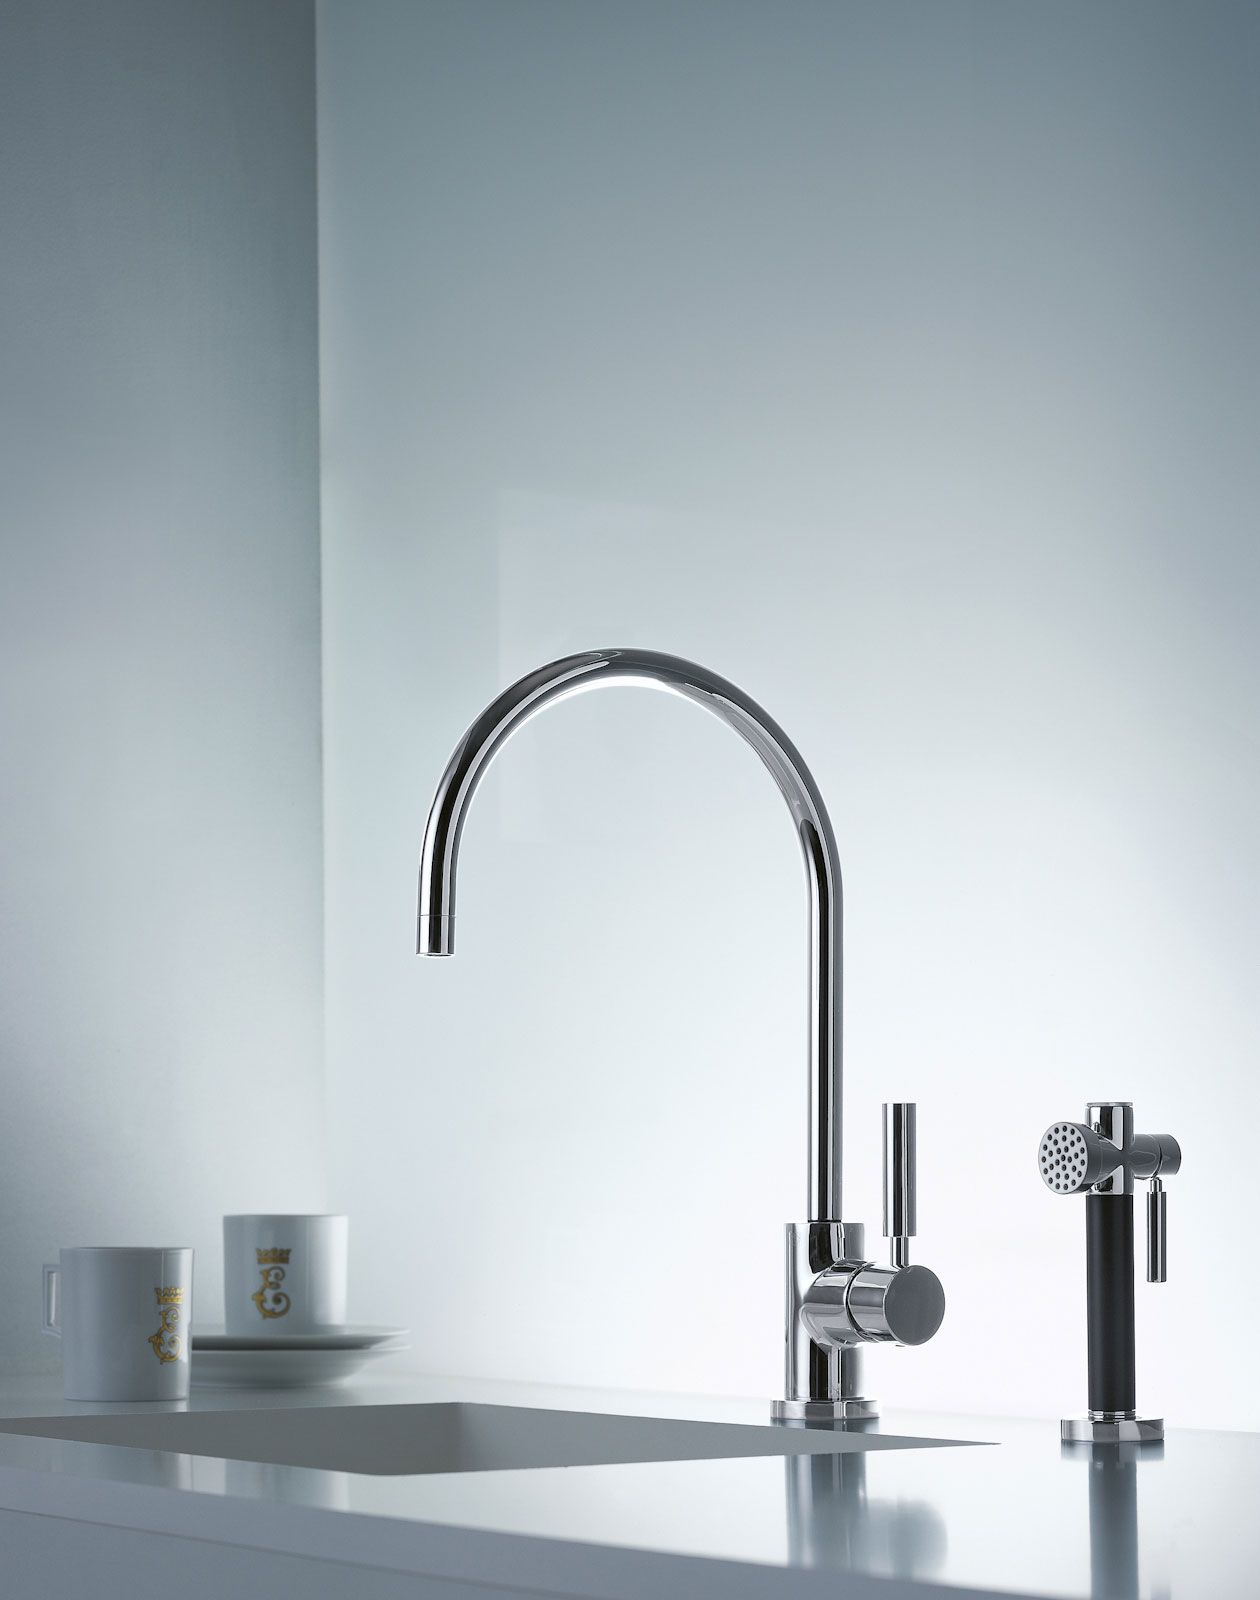 dornbracht faucet kitchen free design tara classic with handspray wyckoff sink and